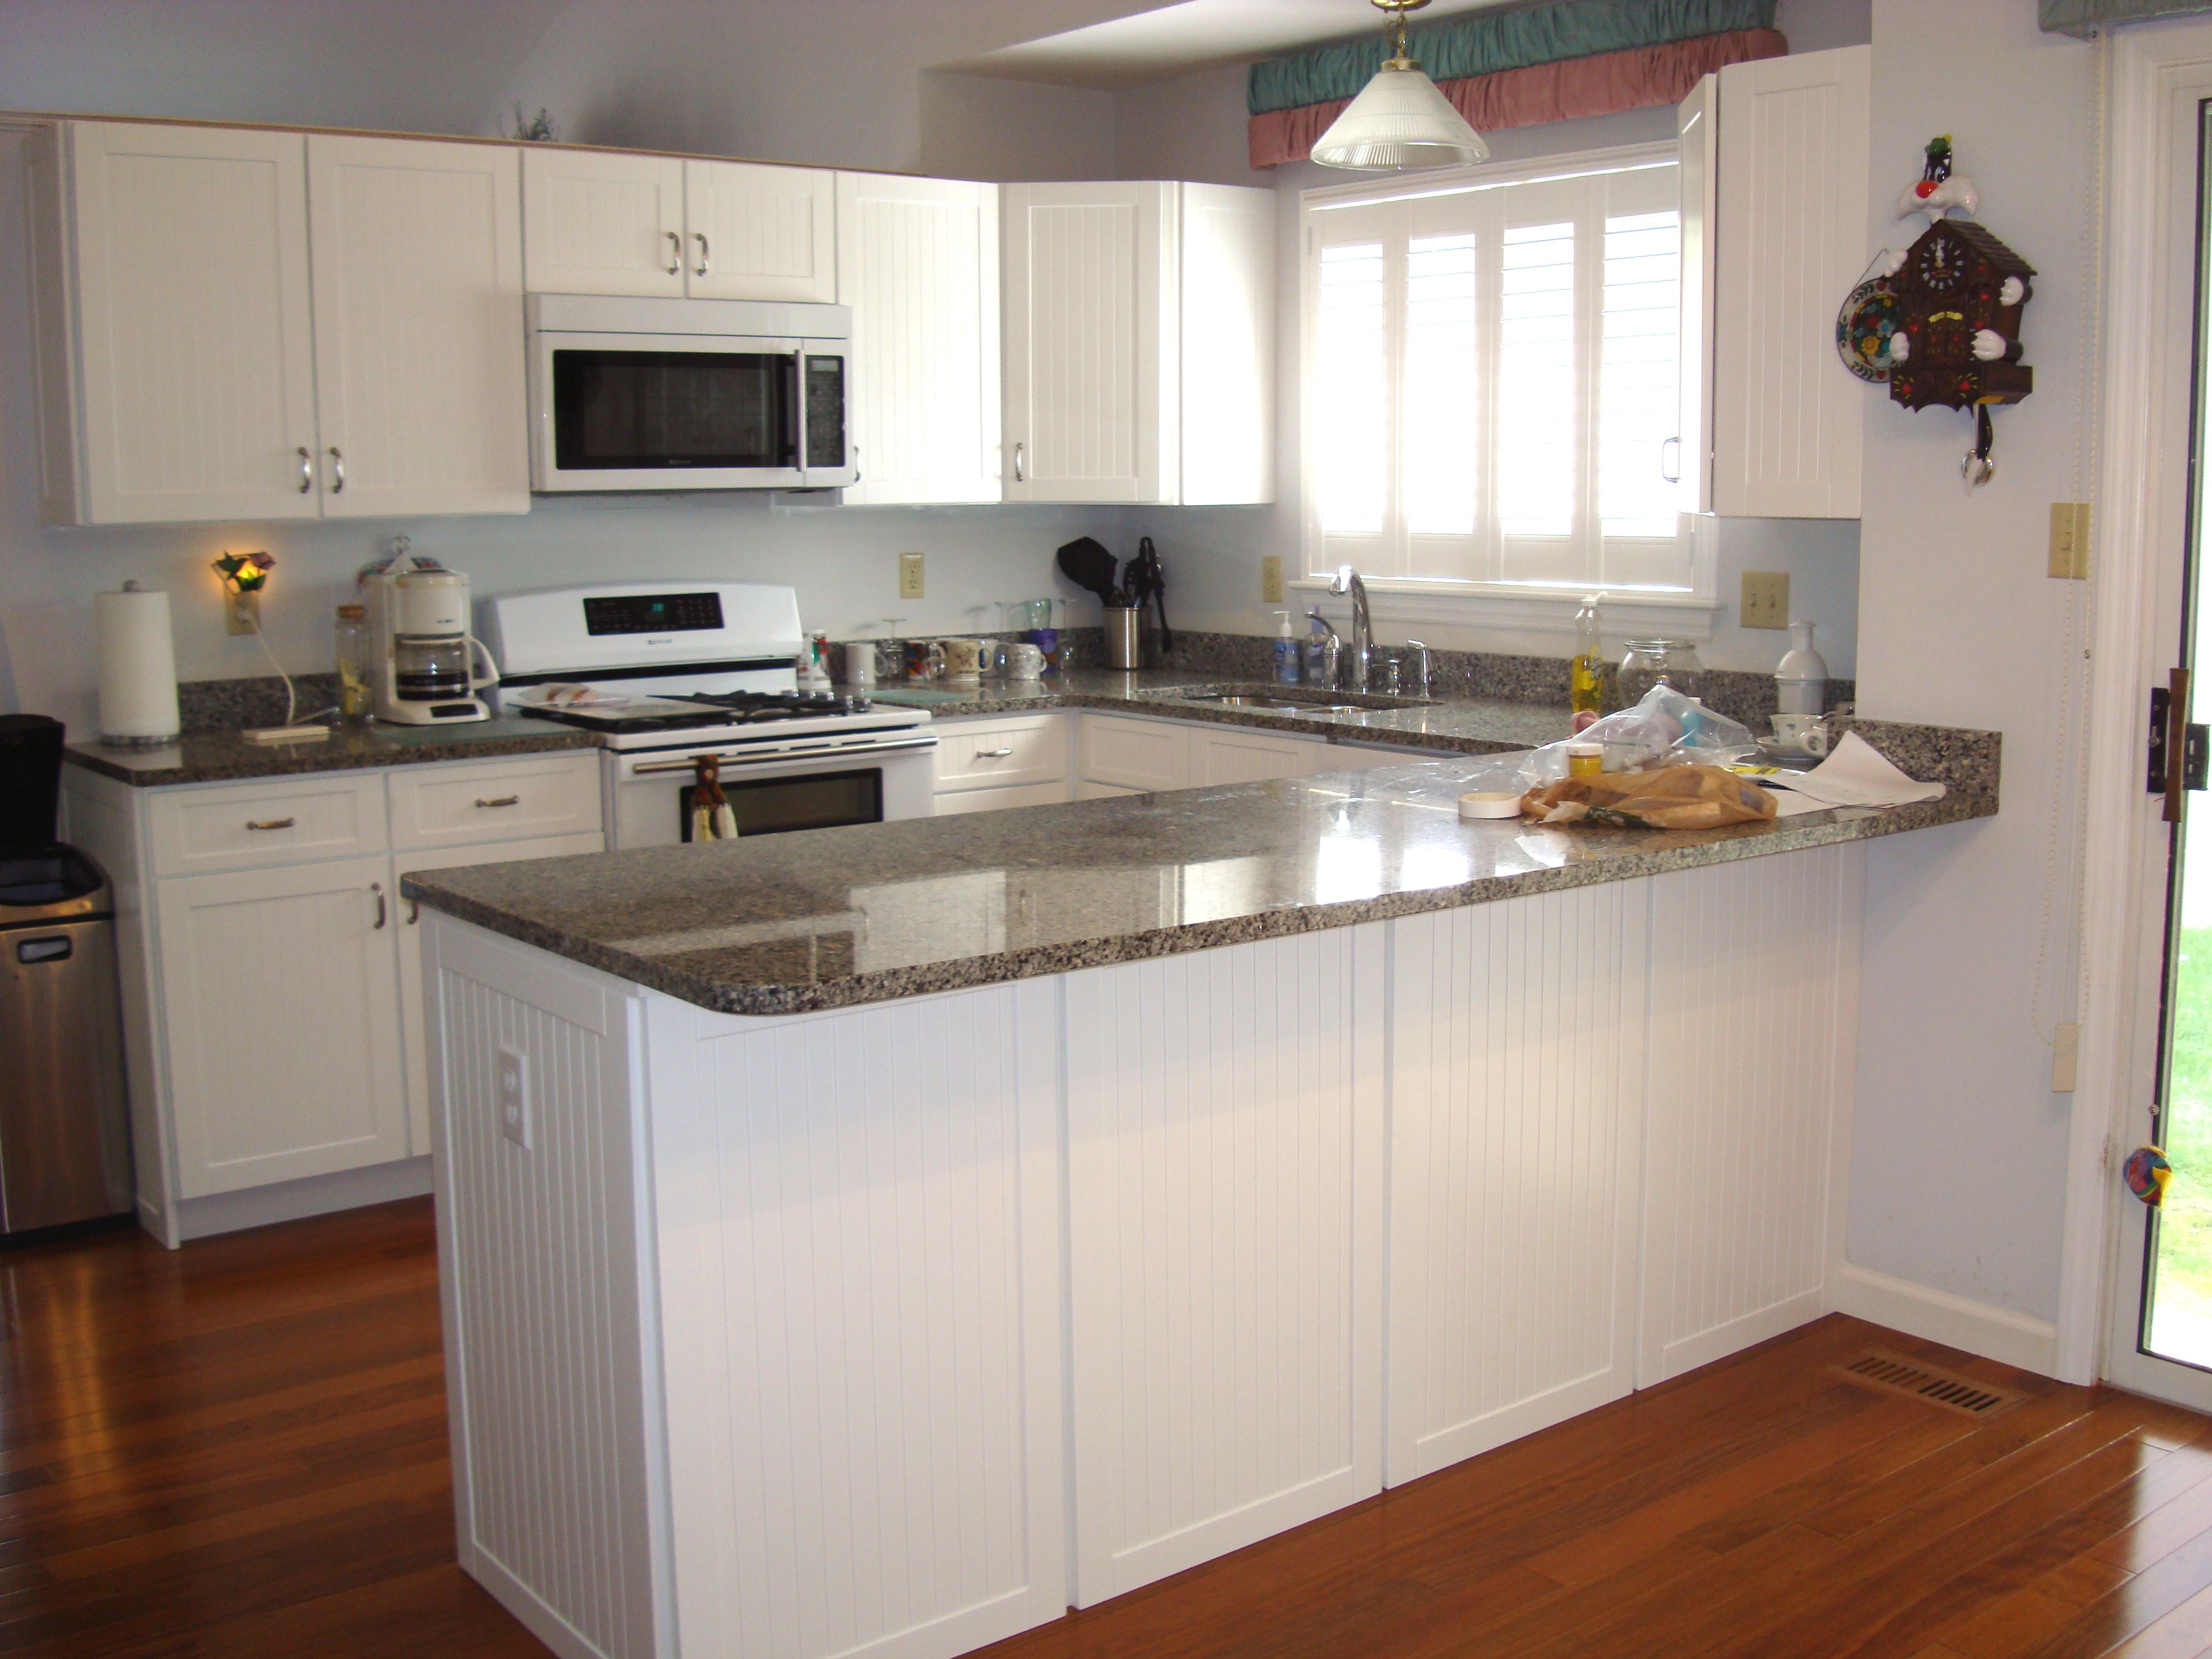 Pin by sparky on Kitchen   Red kitchen cabinets, Red ...